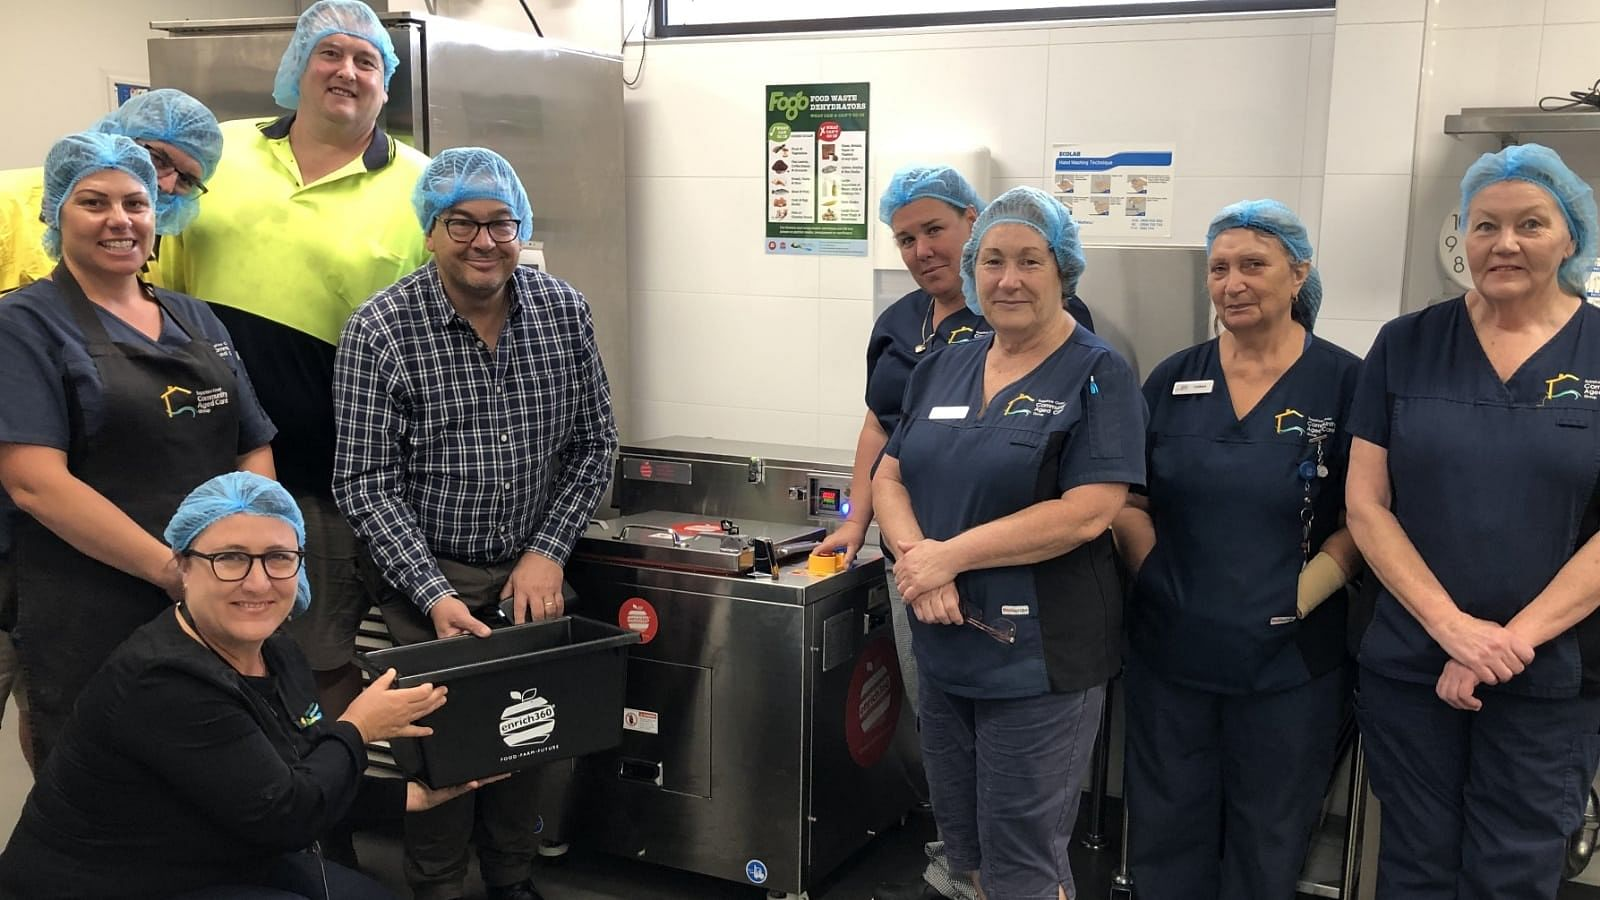 Staff at Hillgrove House being trained how to use the new food dehydrators by enrich360 CEO Dean Turner and Council's Waste Project Officer Rechelle Fisher.